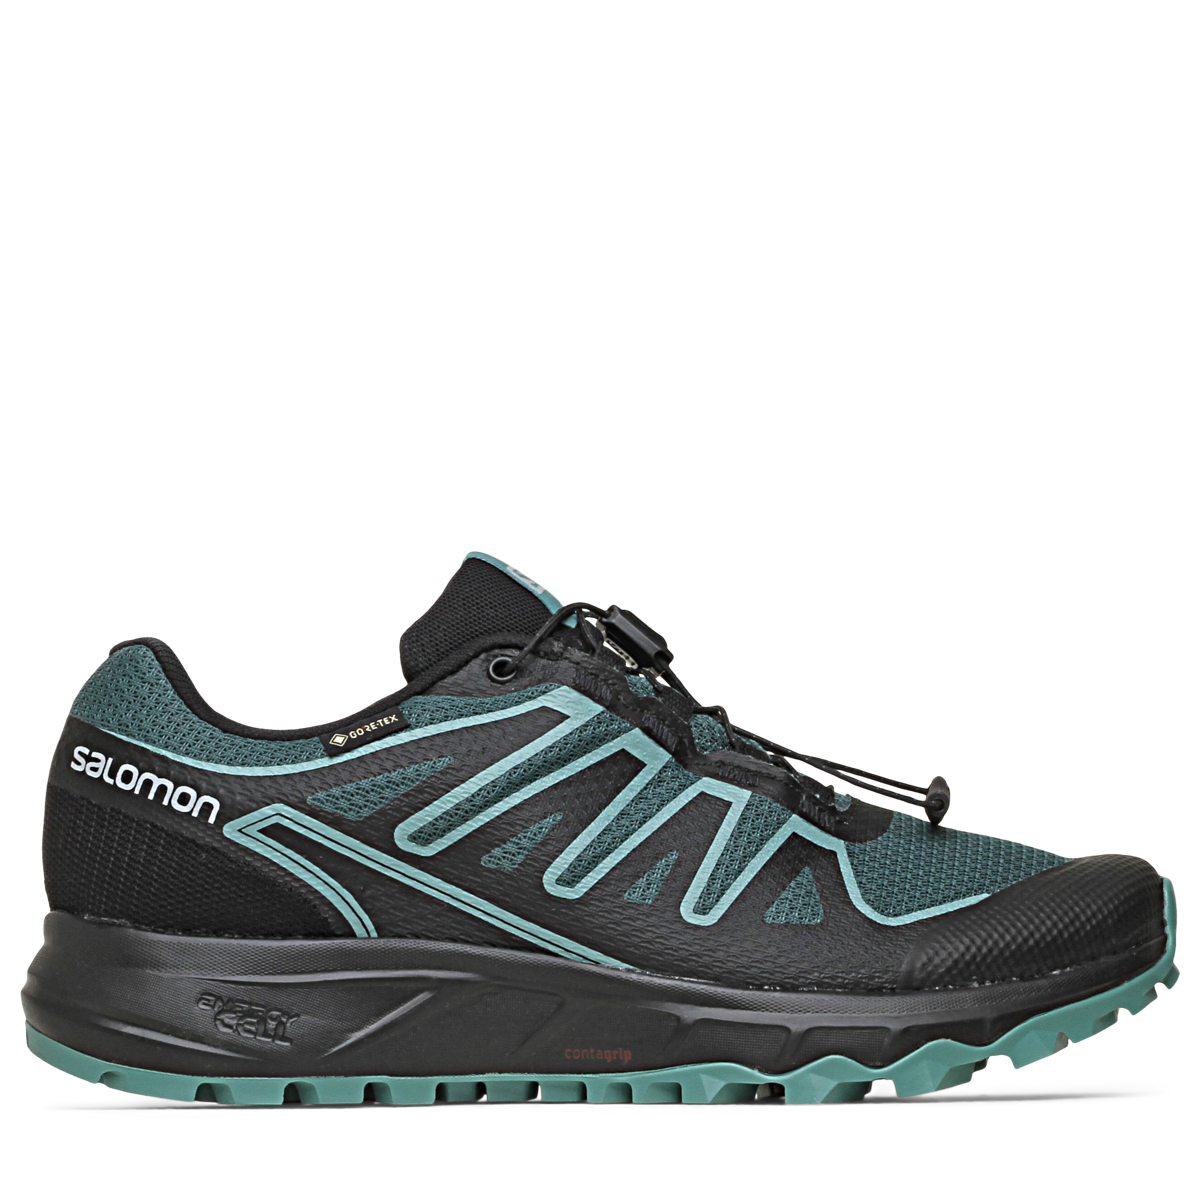 Salomon - Lioneer GTX - Sort